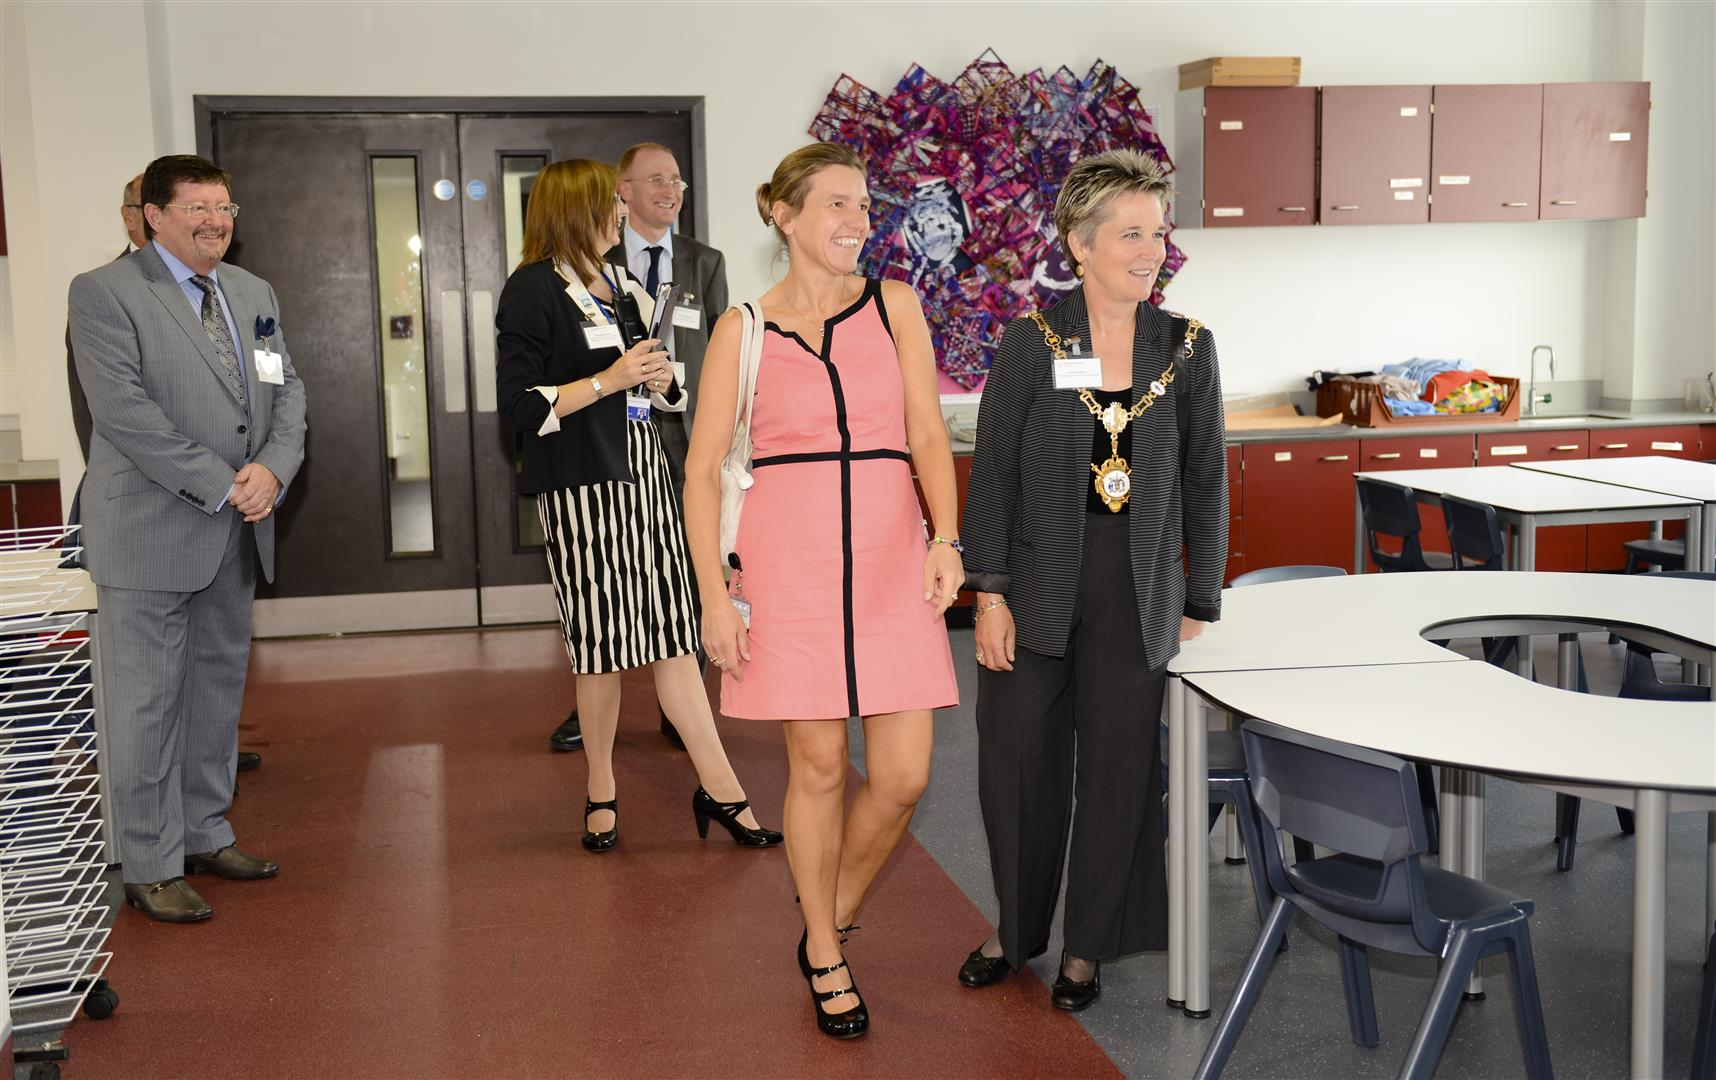 Duke of Buccleuch Officialy Opens Kettering Buccleuch Academy